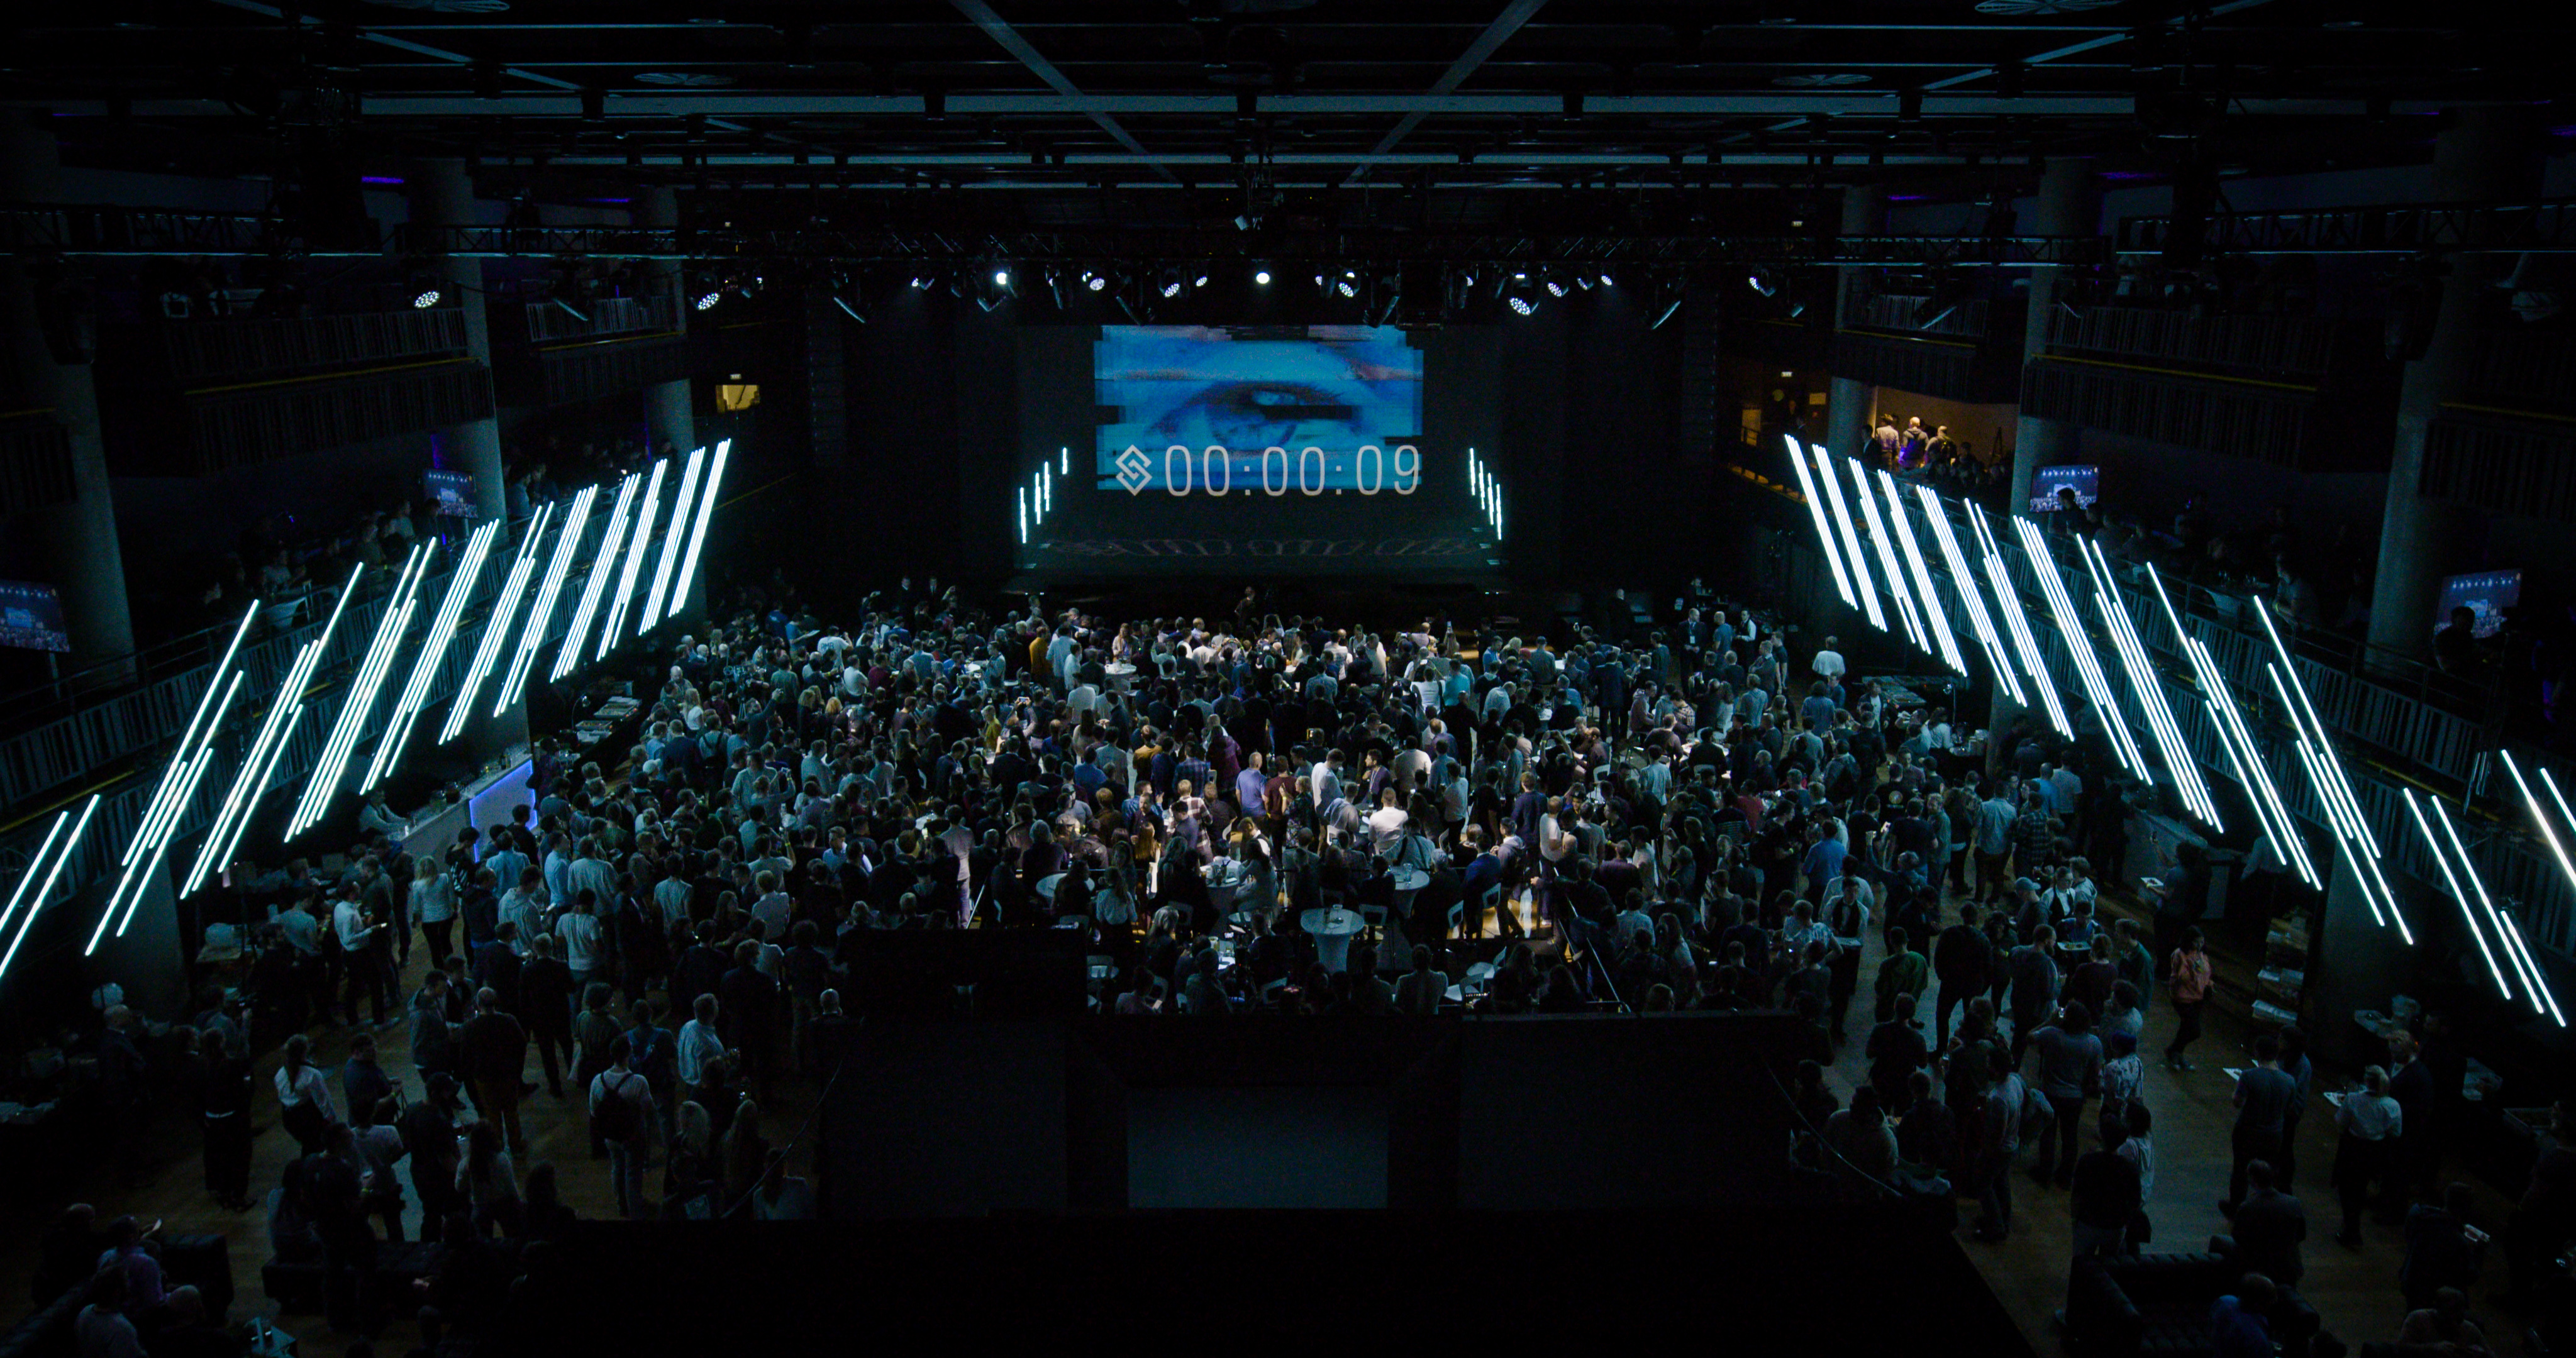 A shot of the crowd during the Blockchains LLC launch